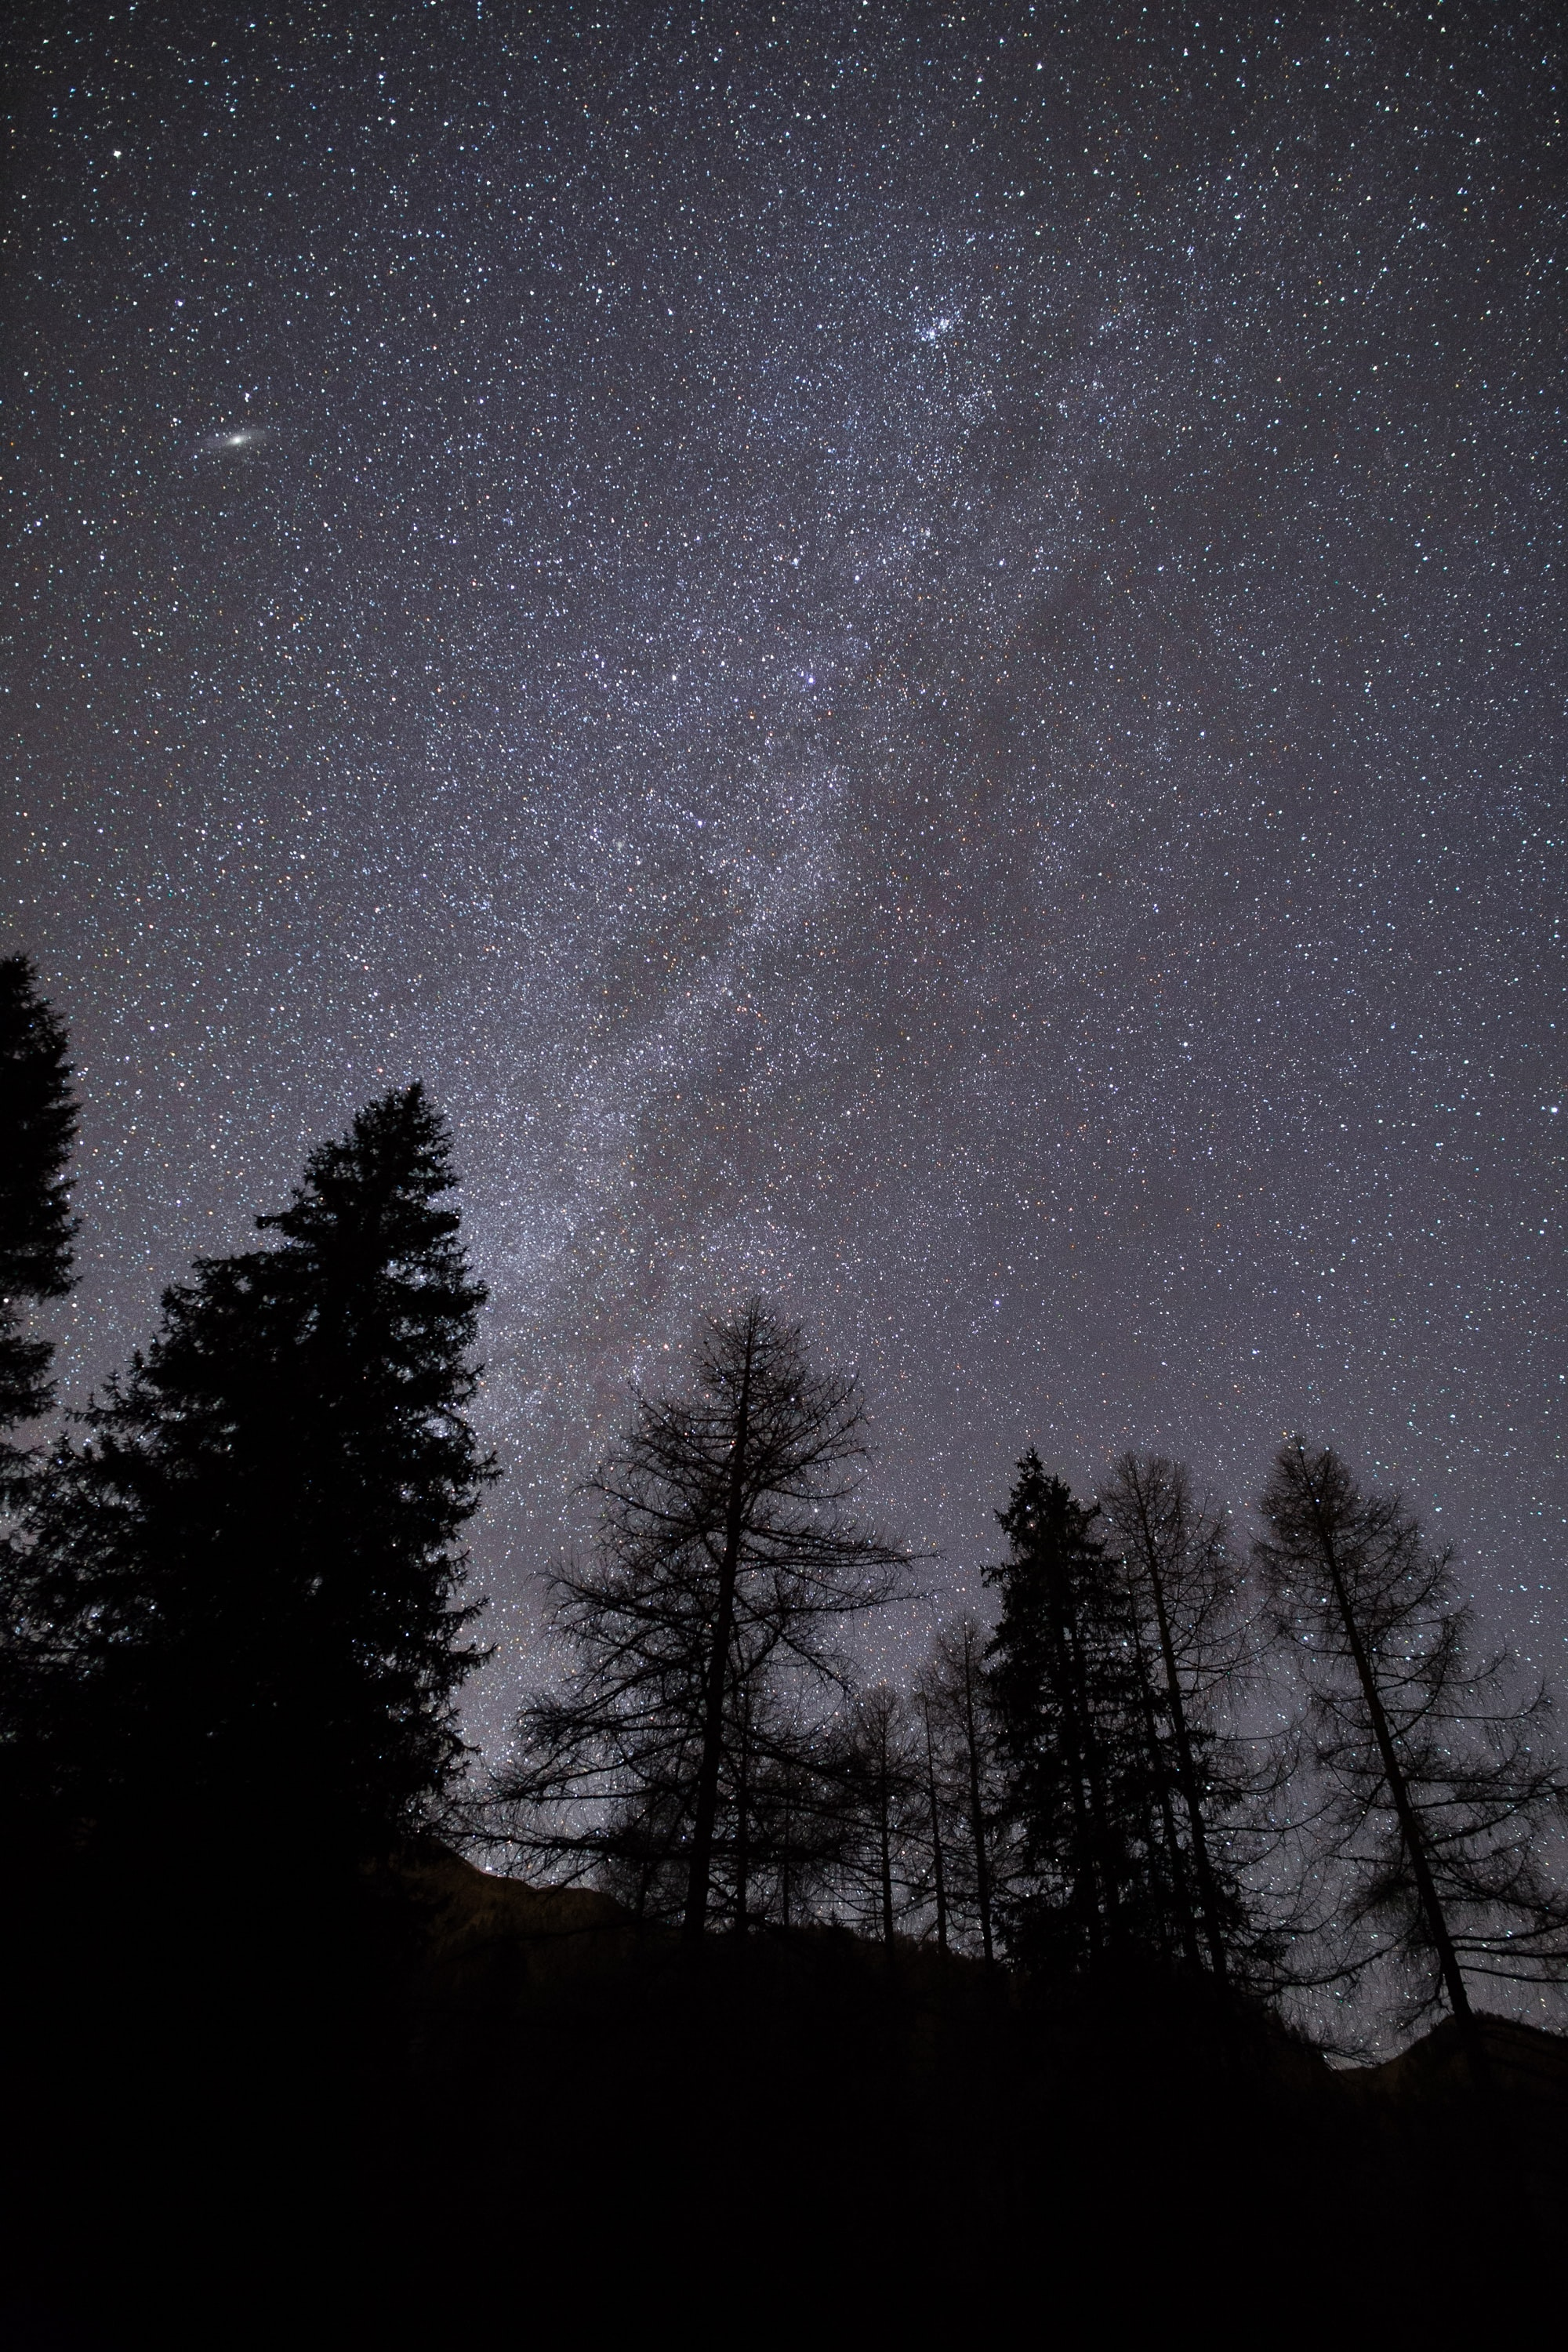 Looking up at the stars and Milky Way over silhouetted pine trees in Giau Pass